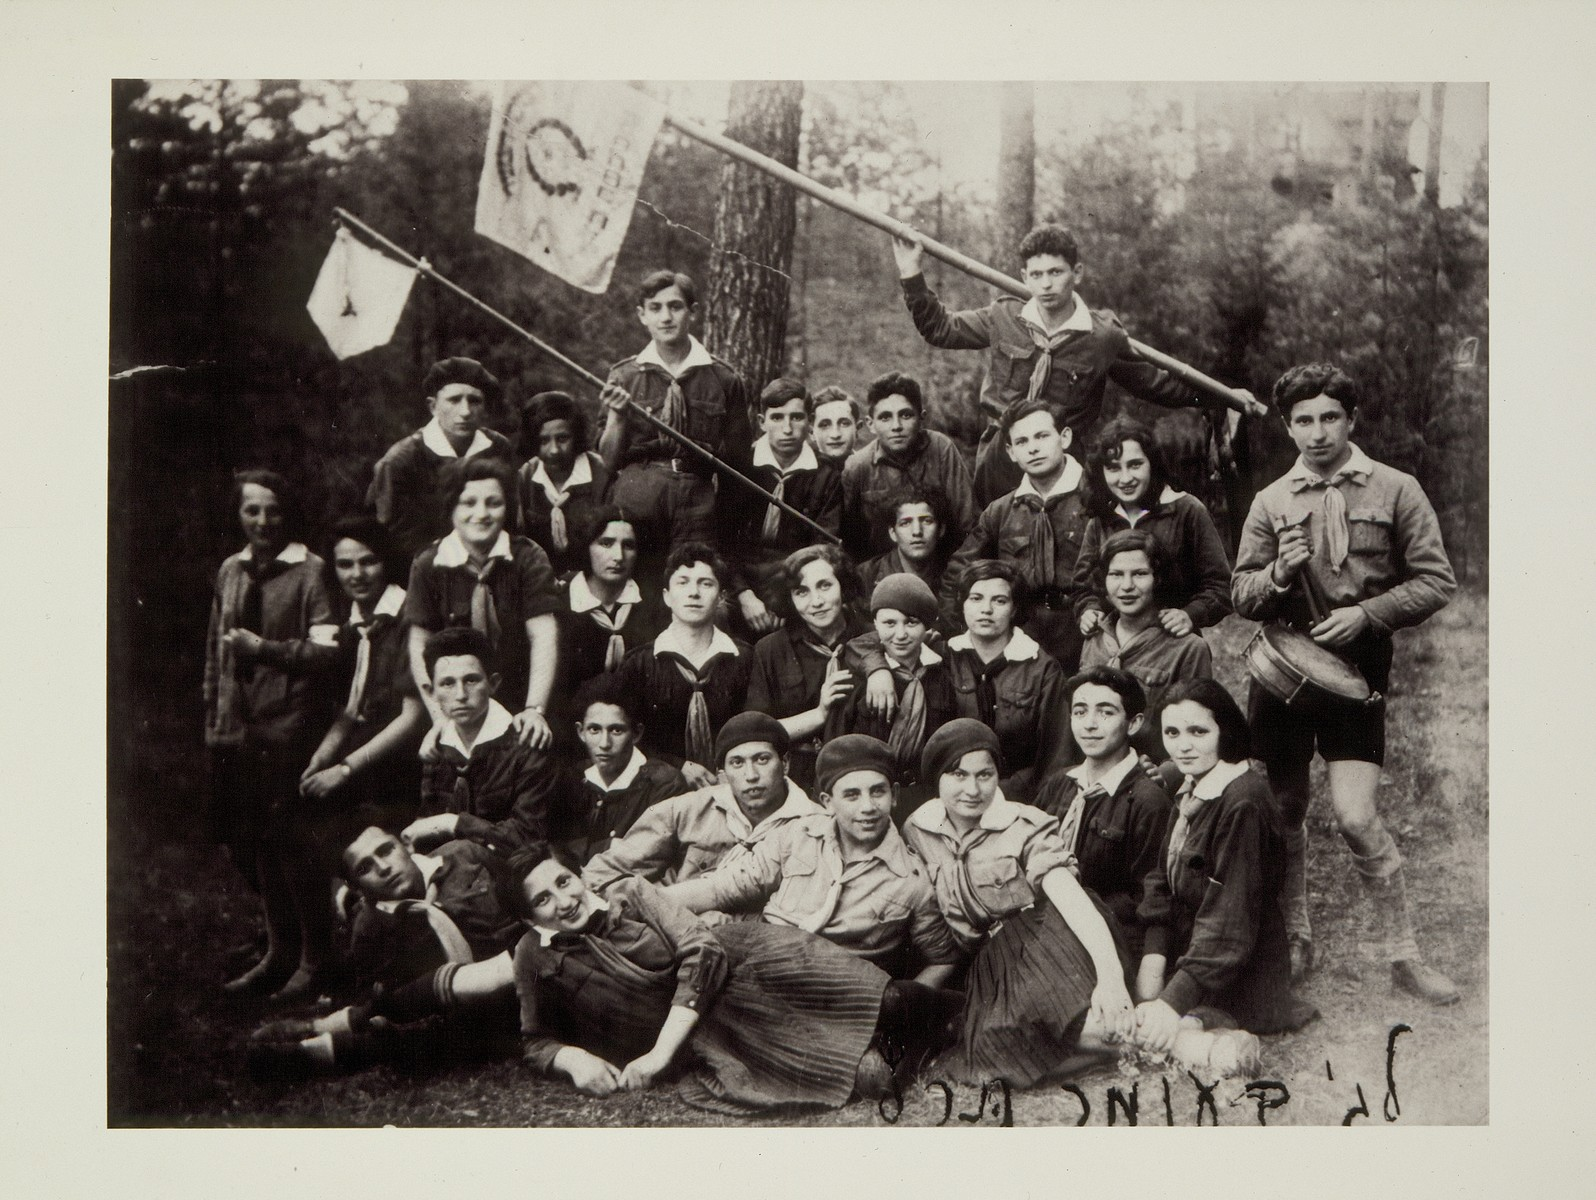 Members of Hashomer Hatzair from Eisiskes and Vilna celebrate Lag Ba'Omer on an outing in the woods.   Dov Wilenski, is standing in the top row holding a flag.  He later immigrated to Palestine.